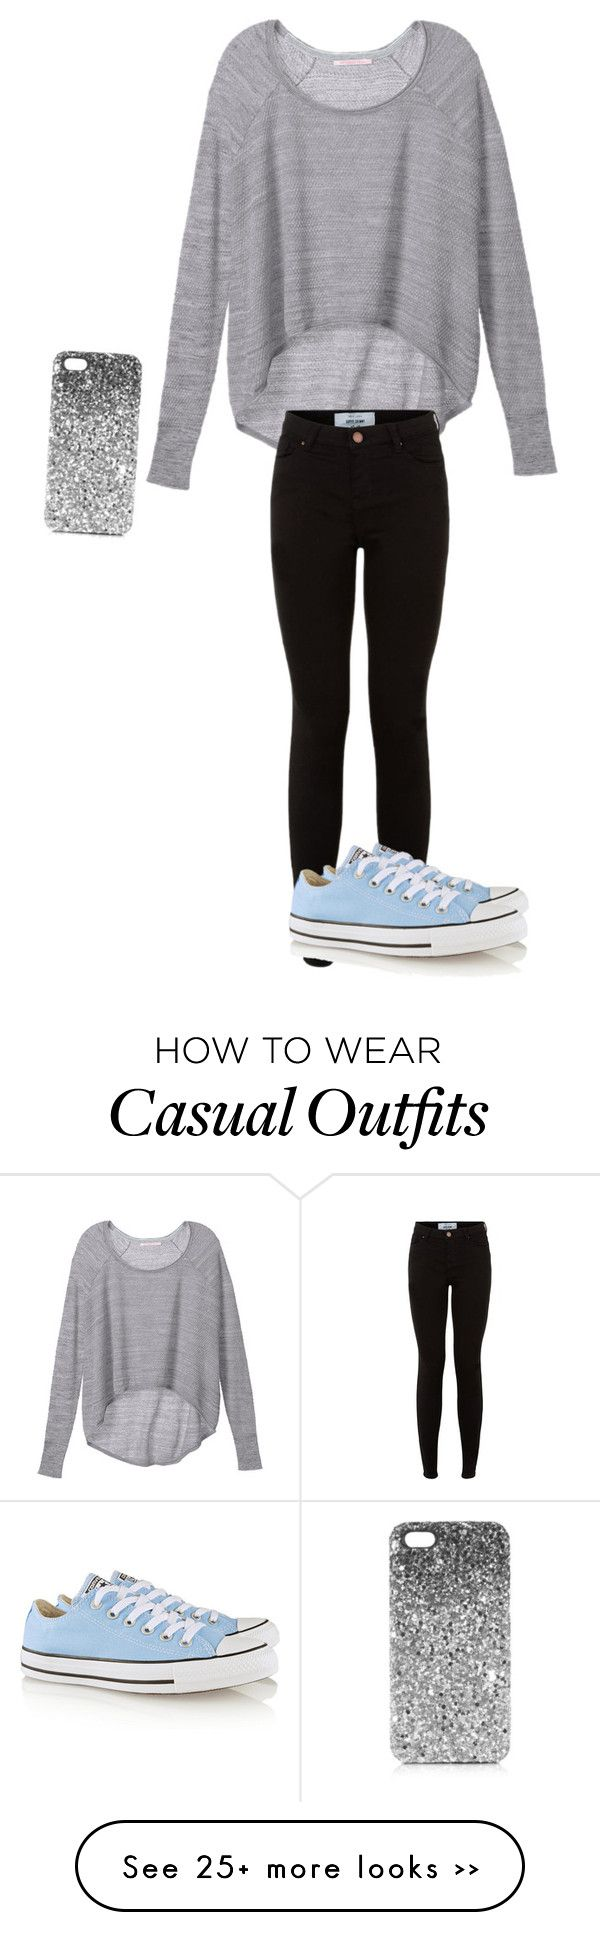 """Casual Winter"" by lillieputian on Polyvore featuring Victoria's Secret, Converse and Topshop"